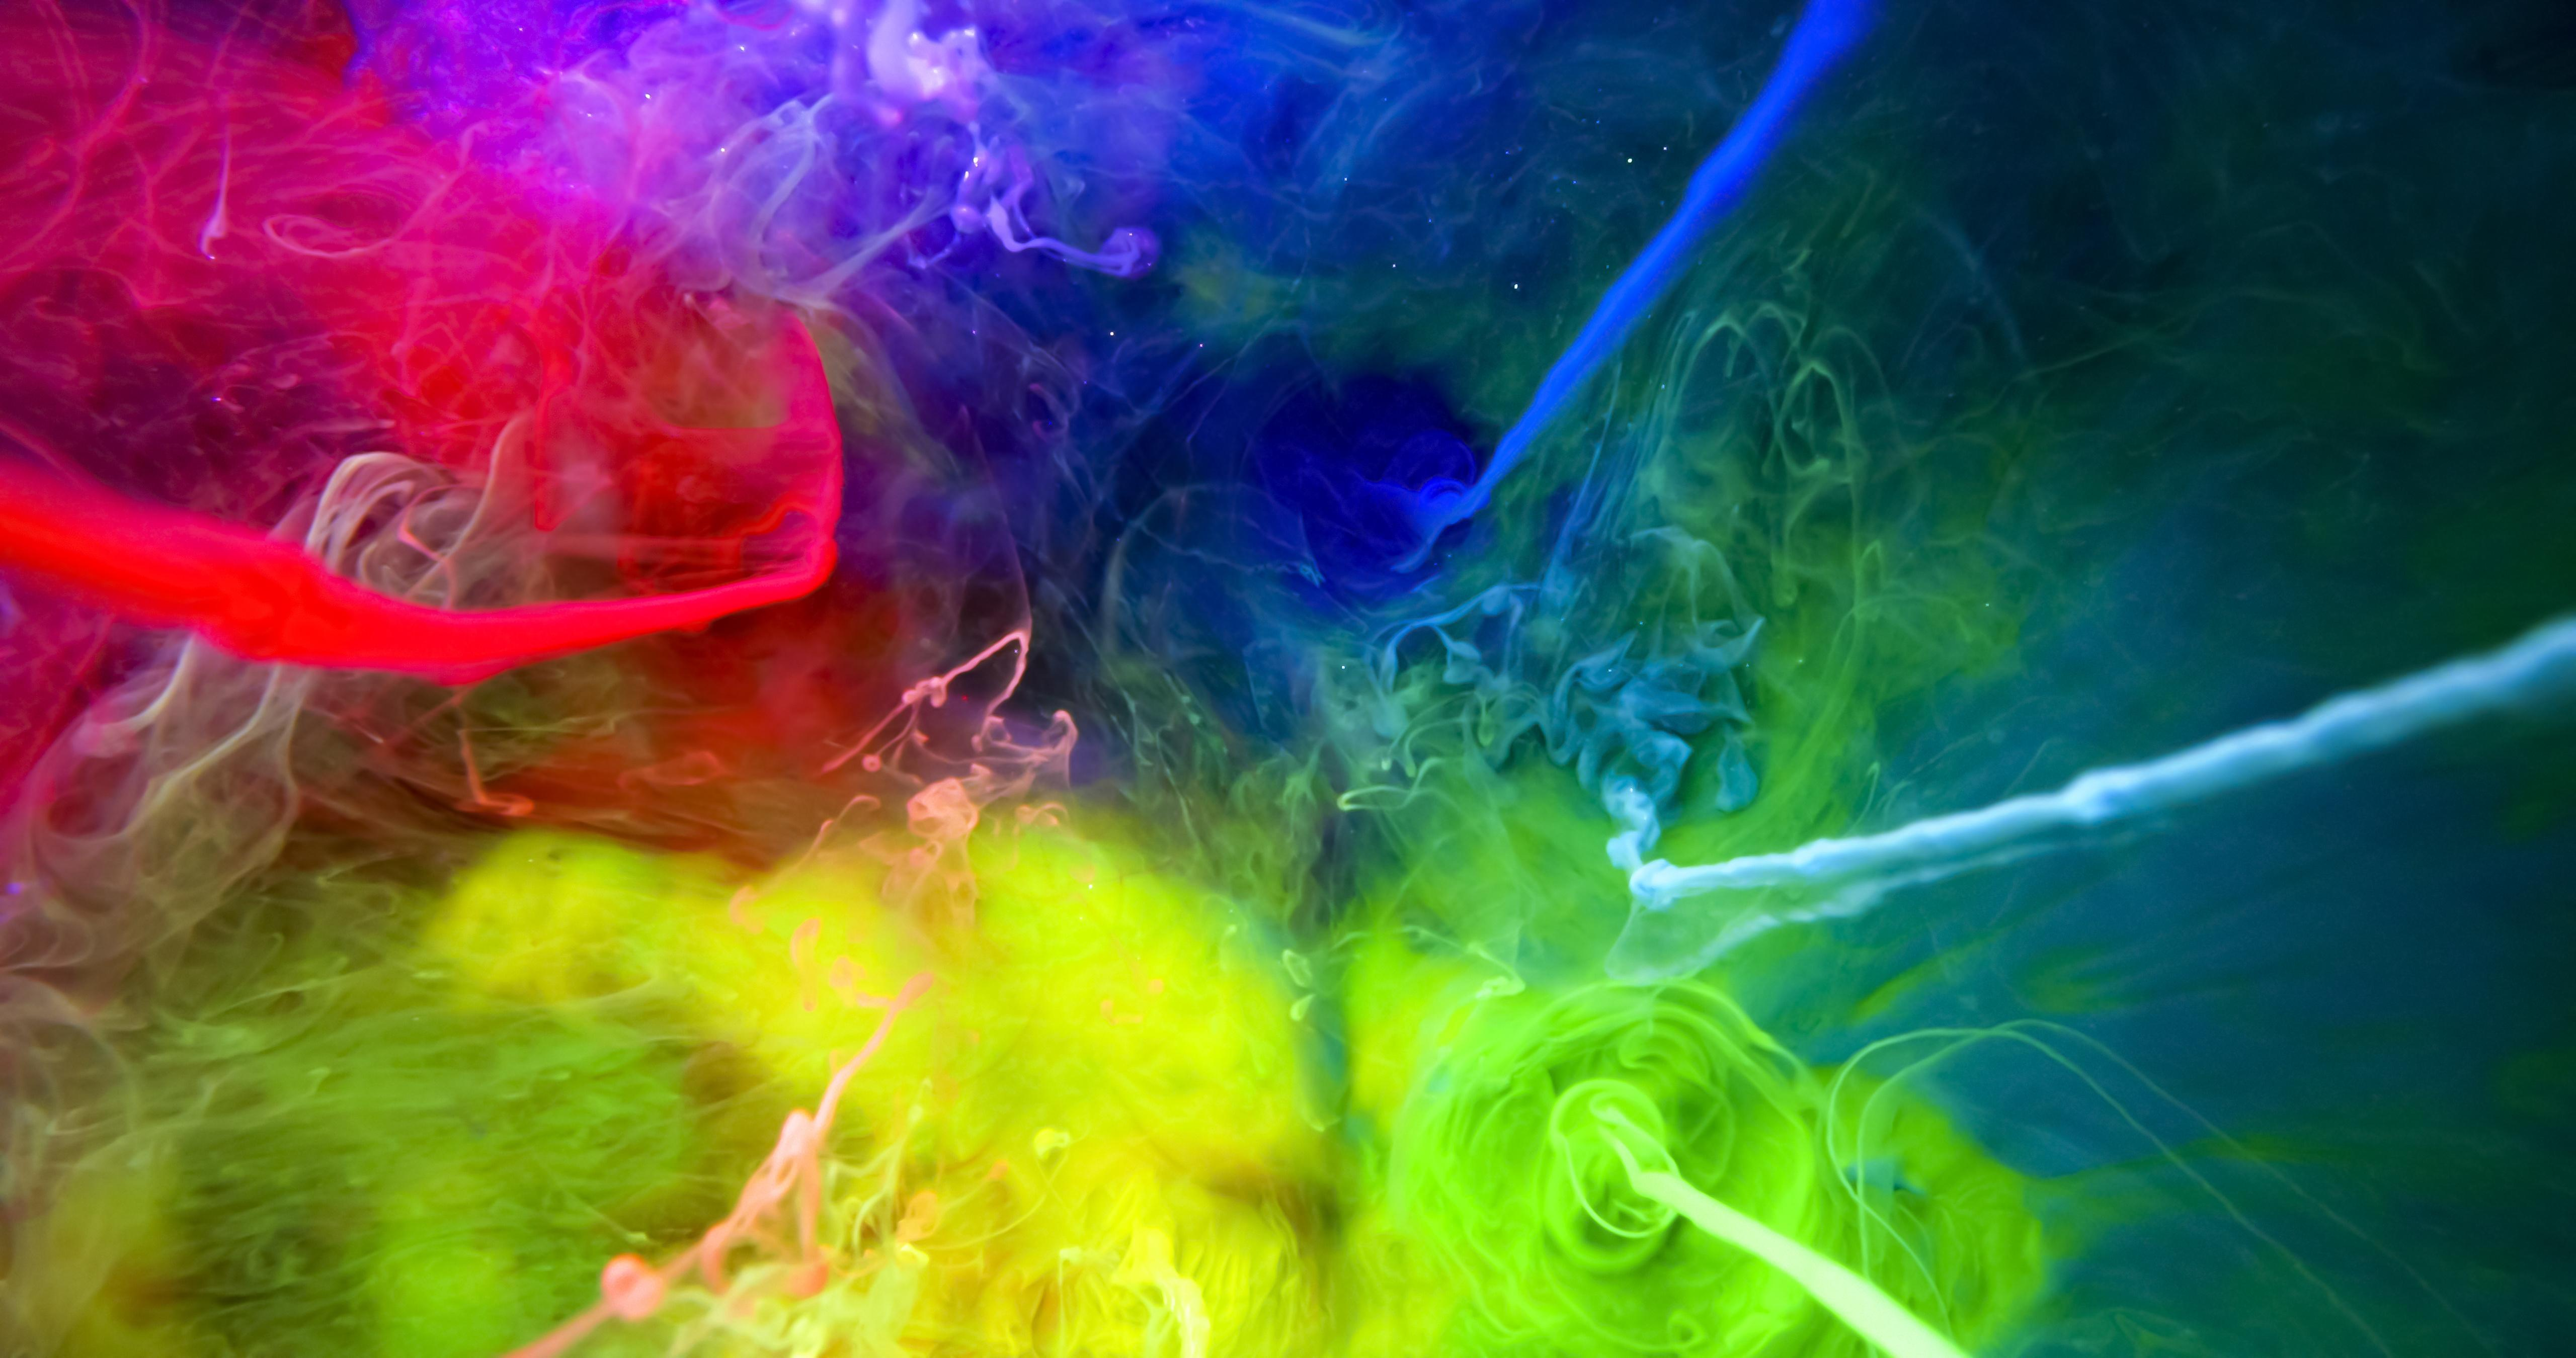 An abstract background with brightly coloured ink clouds